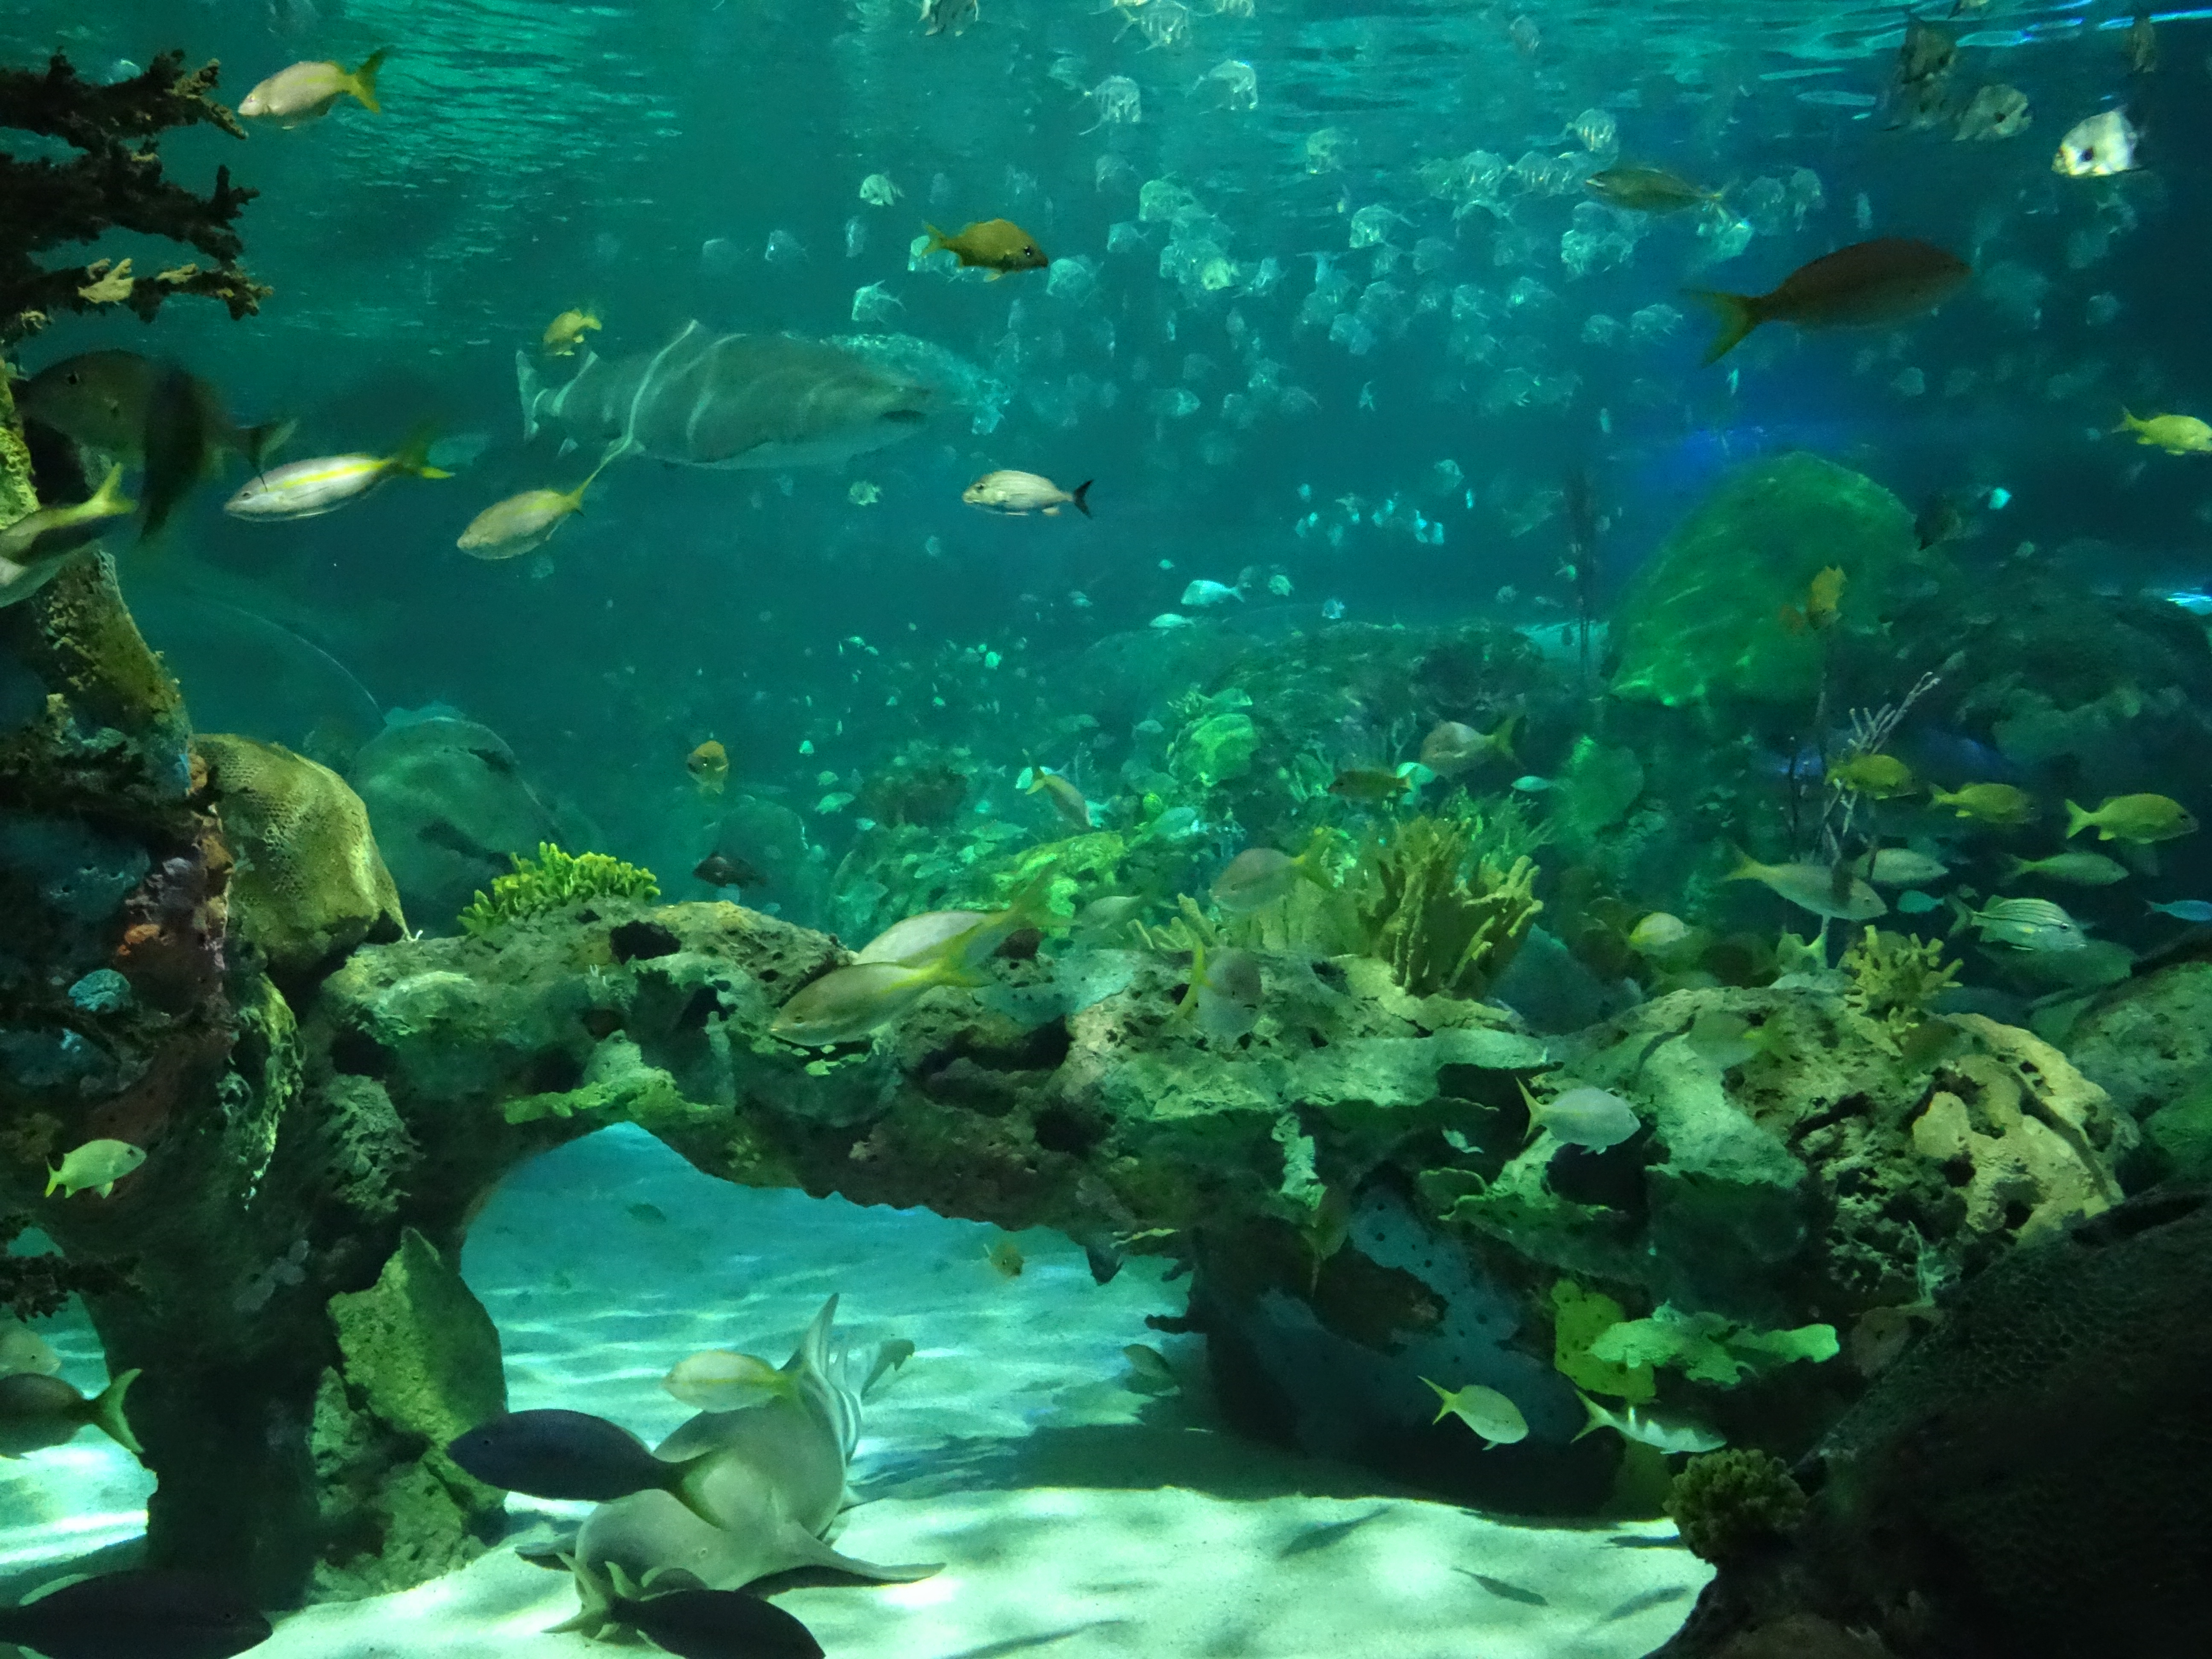 Fish aquarium in canada - Dangerous Lagoon